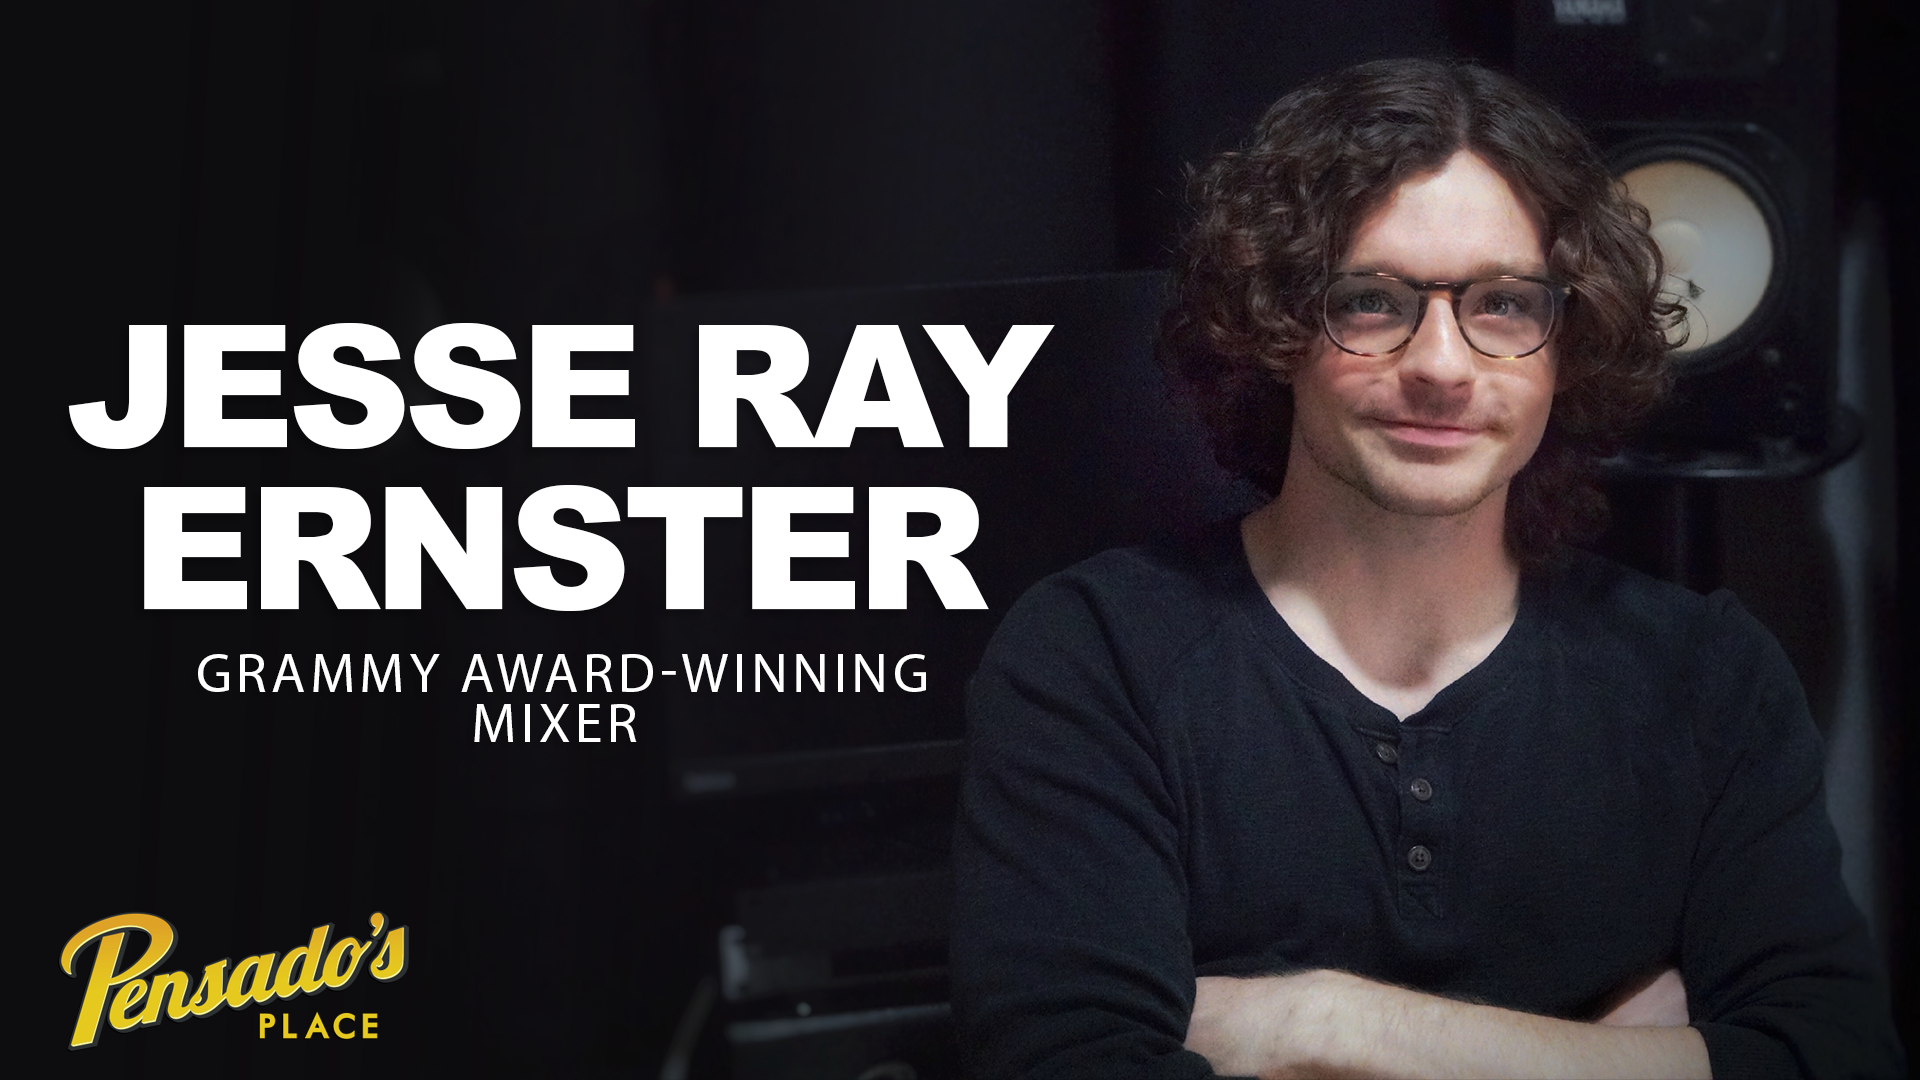 Grammy Award Winning Mixer, Jesse Ray Ernster